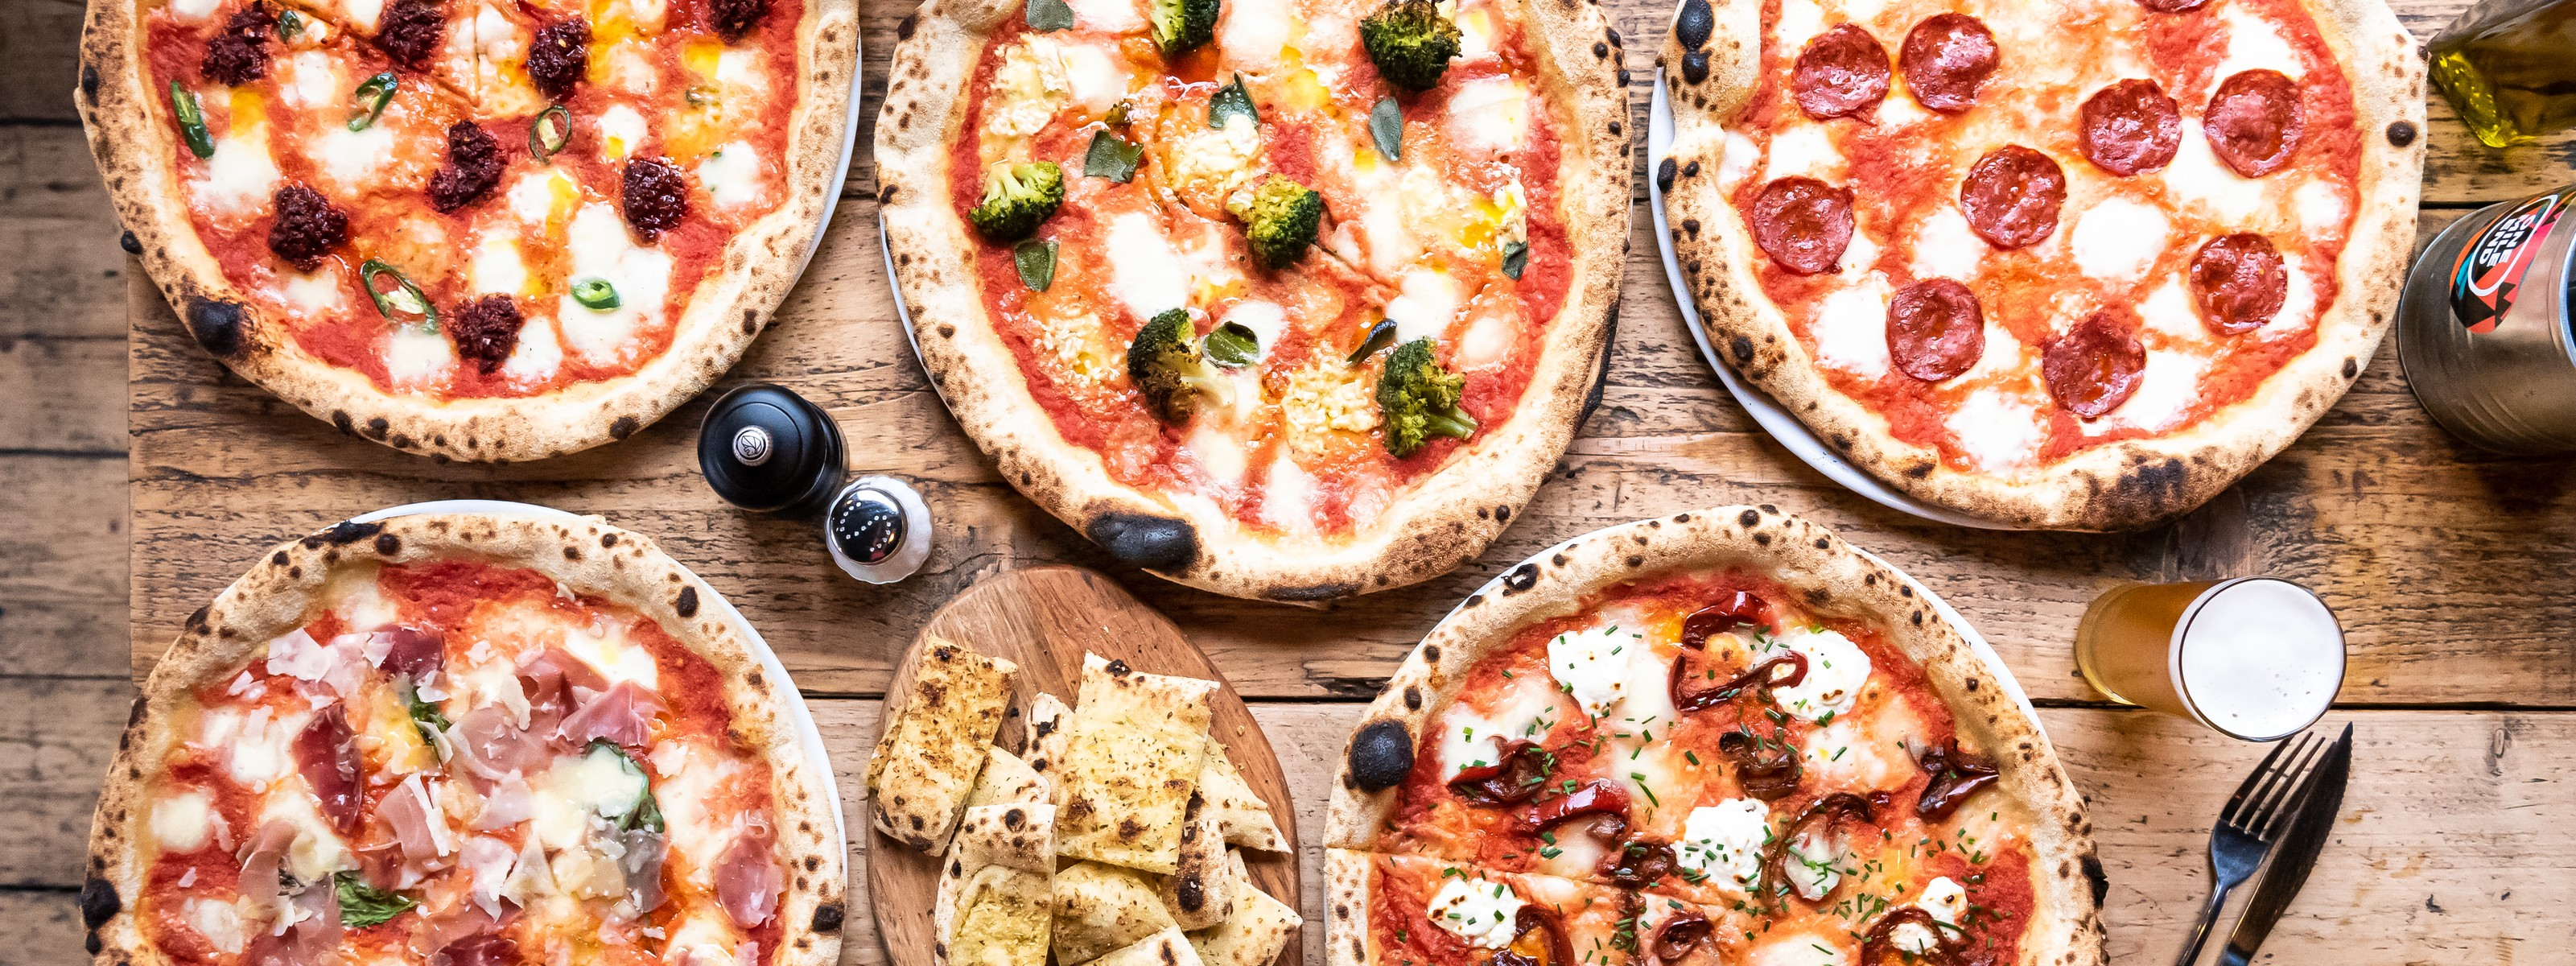 The London Pizza Delivery Guide - London - The Infatuation